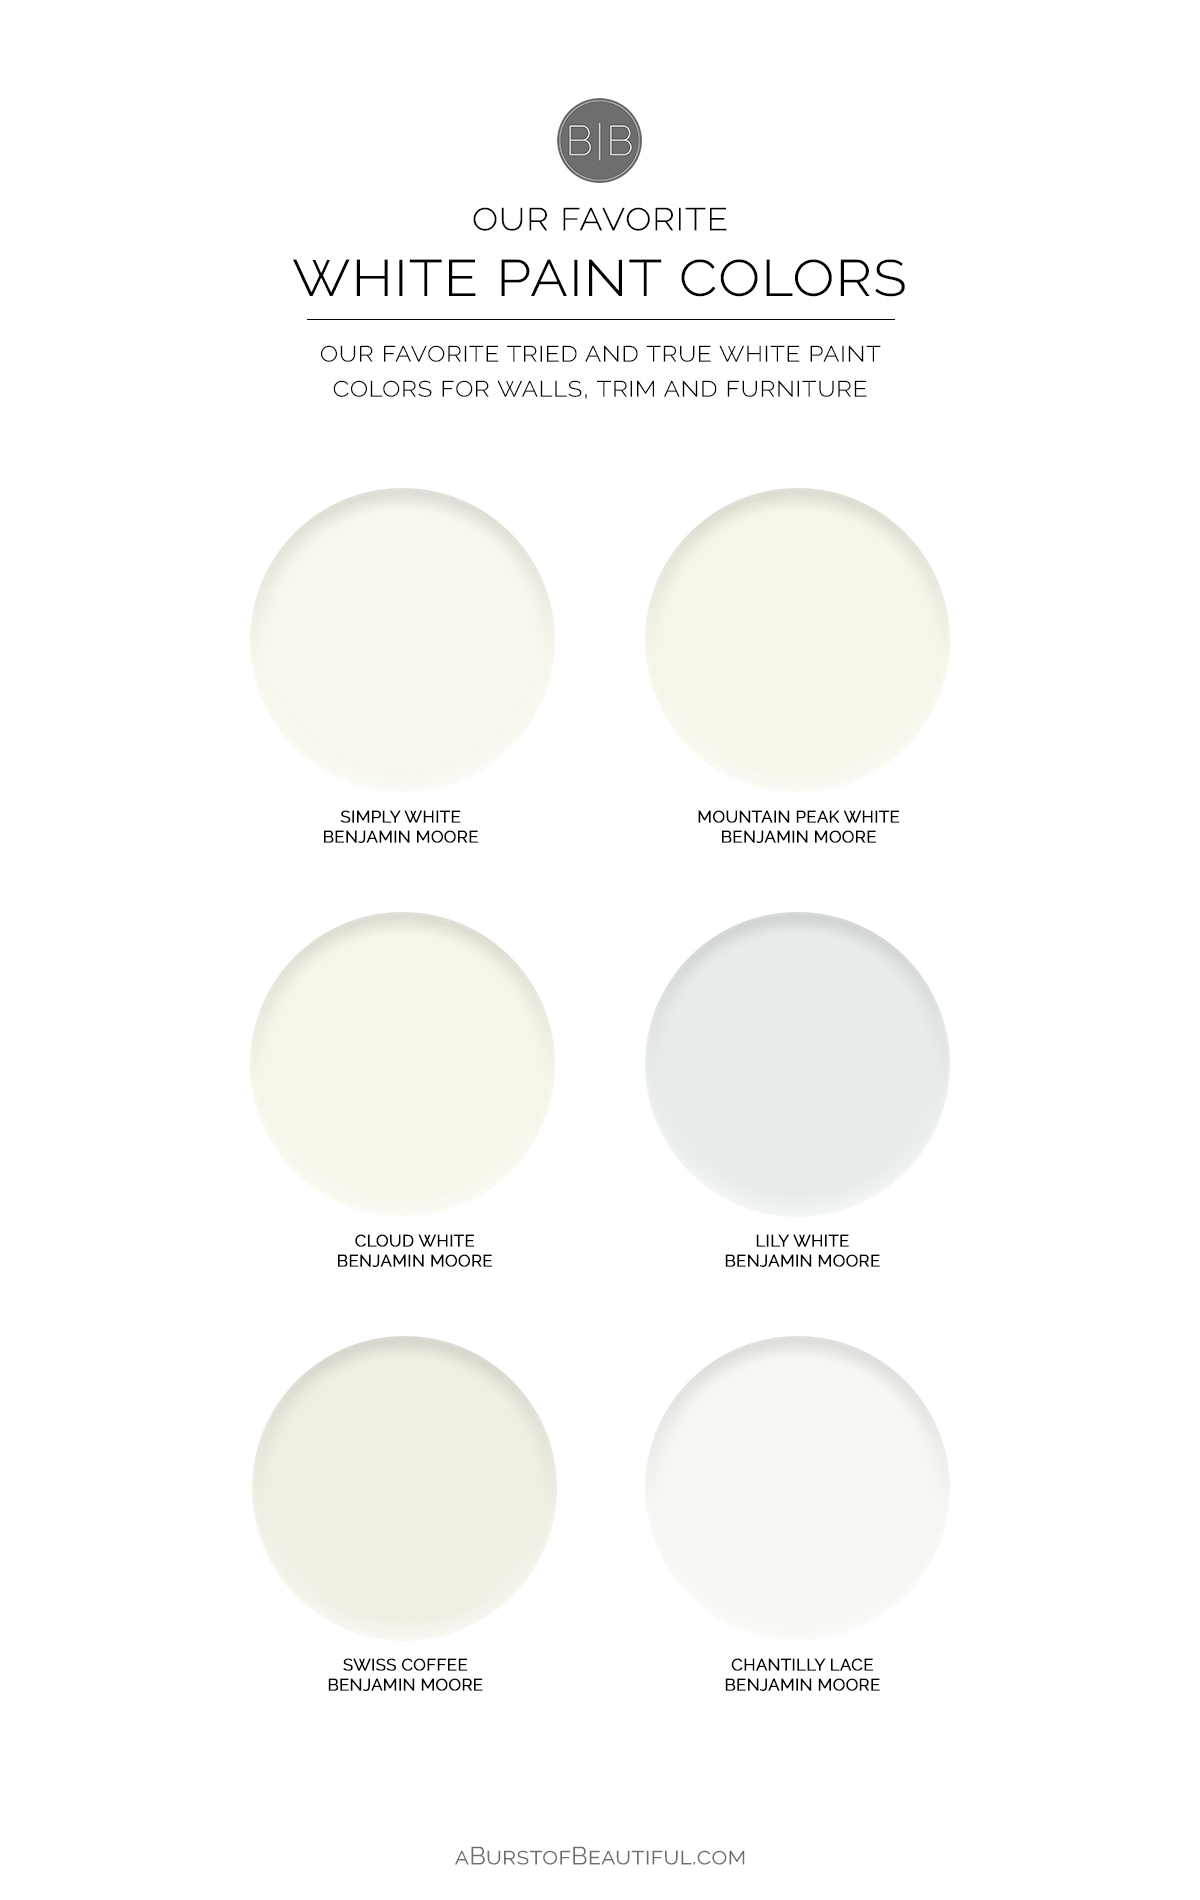 To Chat With You About Our Tried And True Favorite White Paint Colors Give A Little Bit Of Feedback On Why We Love The Shades Do